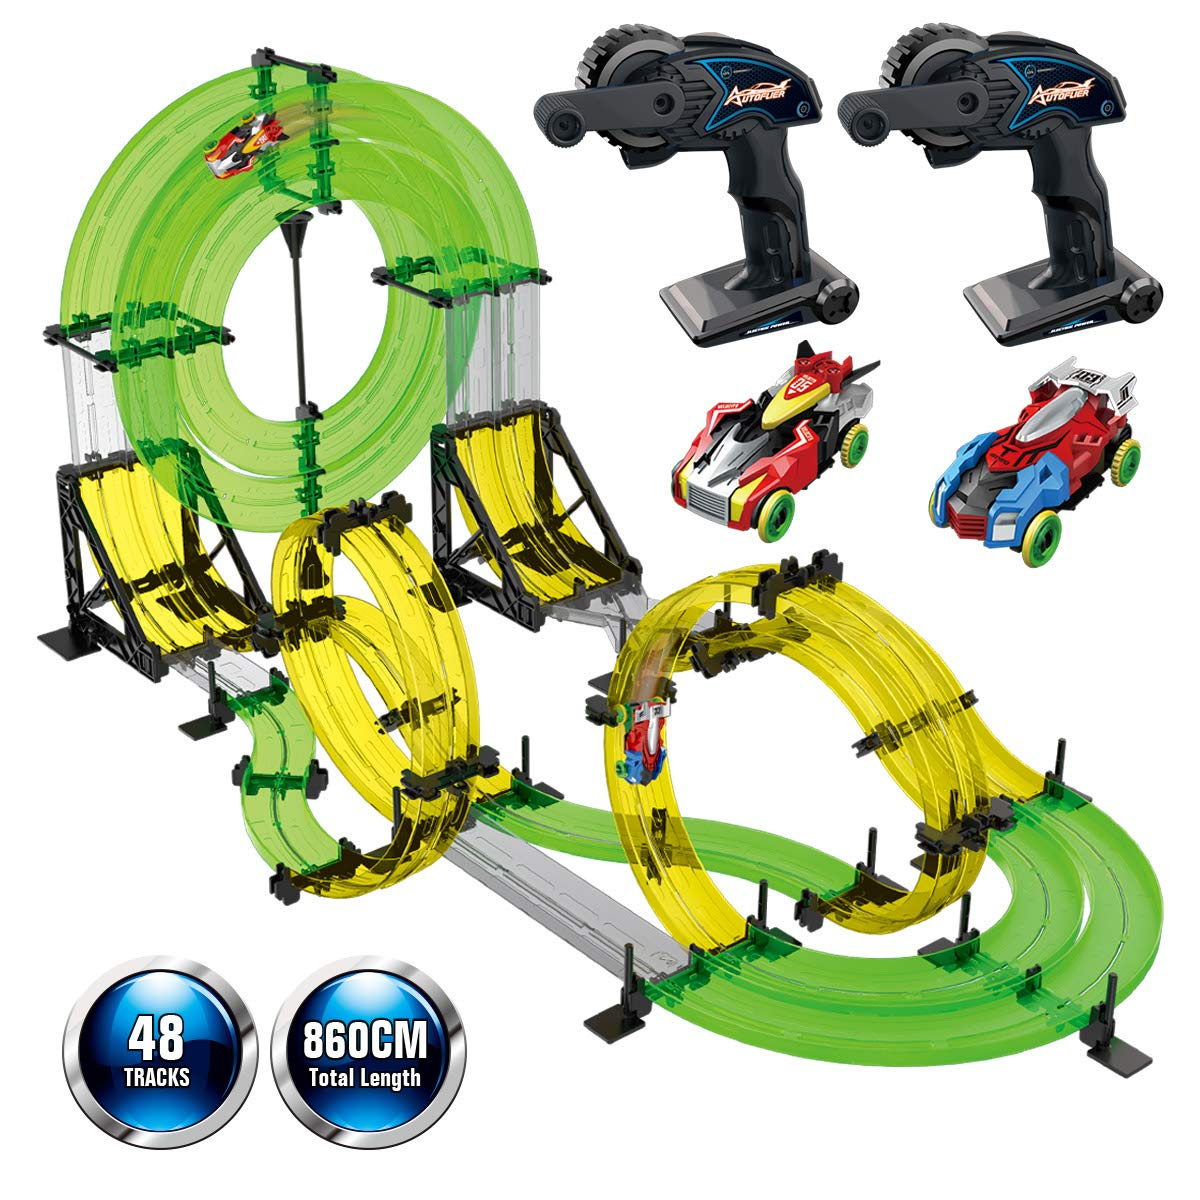 REMOKING Rail Race RC Track Car Toys 860cm Build Your Own 3D Super Track Ultimate Slot Car Playset 2 Cars 2 Remote Controller Party Game Kids Friends by REMOKING